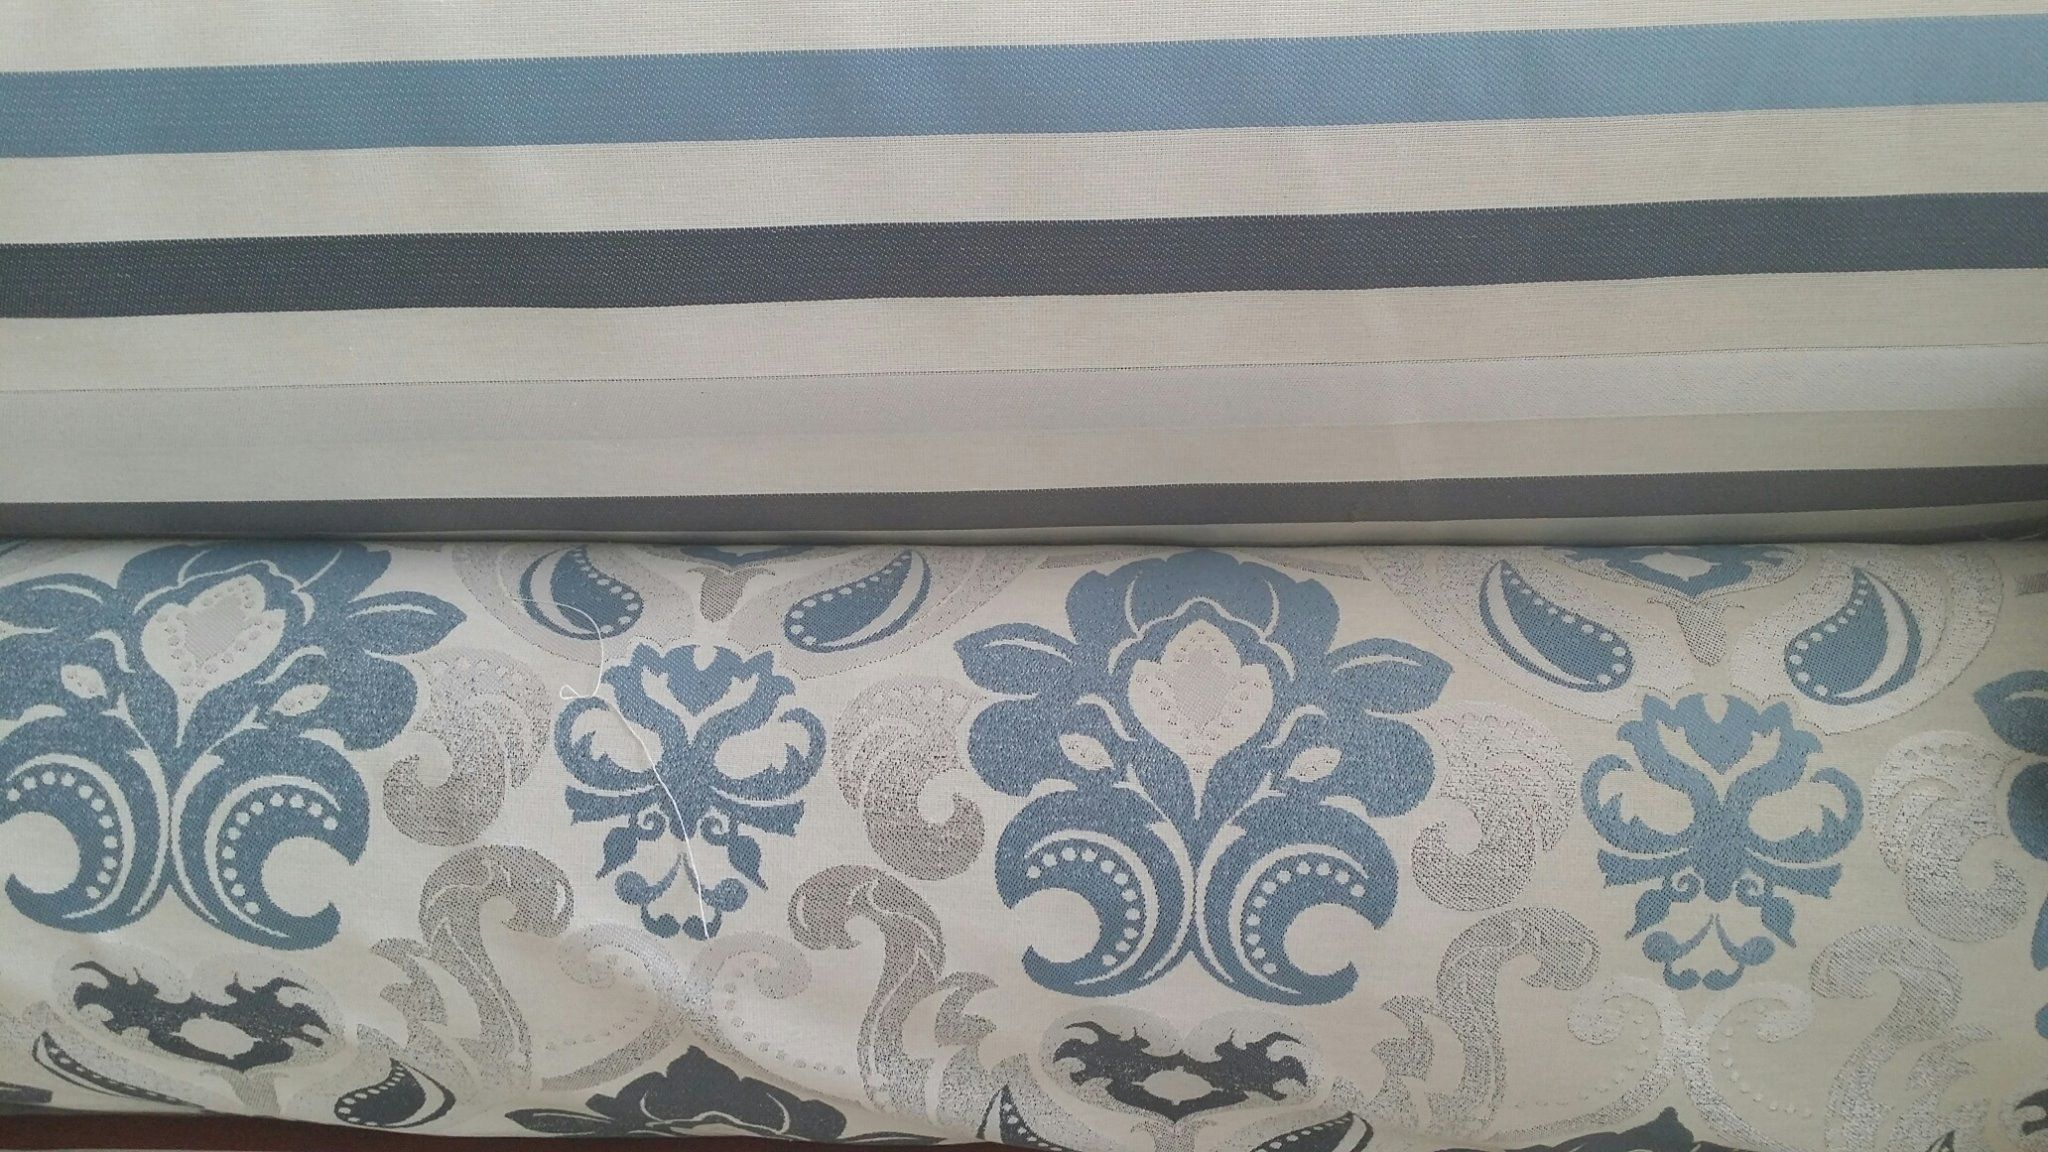 New Stock of Elegant Woven Fabrics Just been added to our Amazing Collections!!